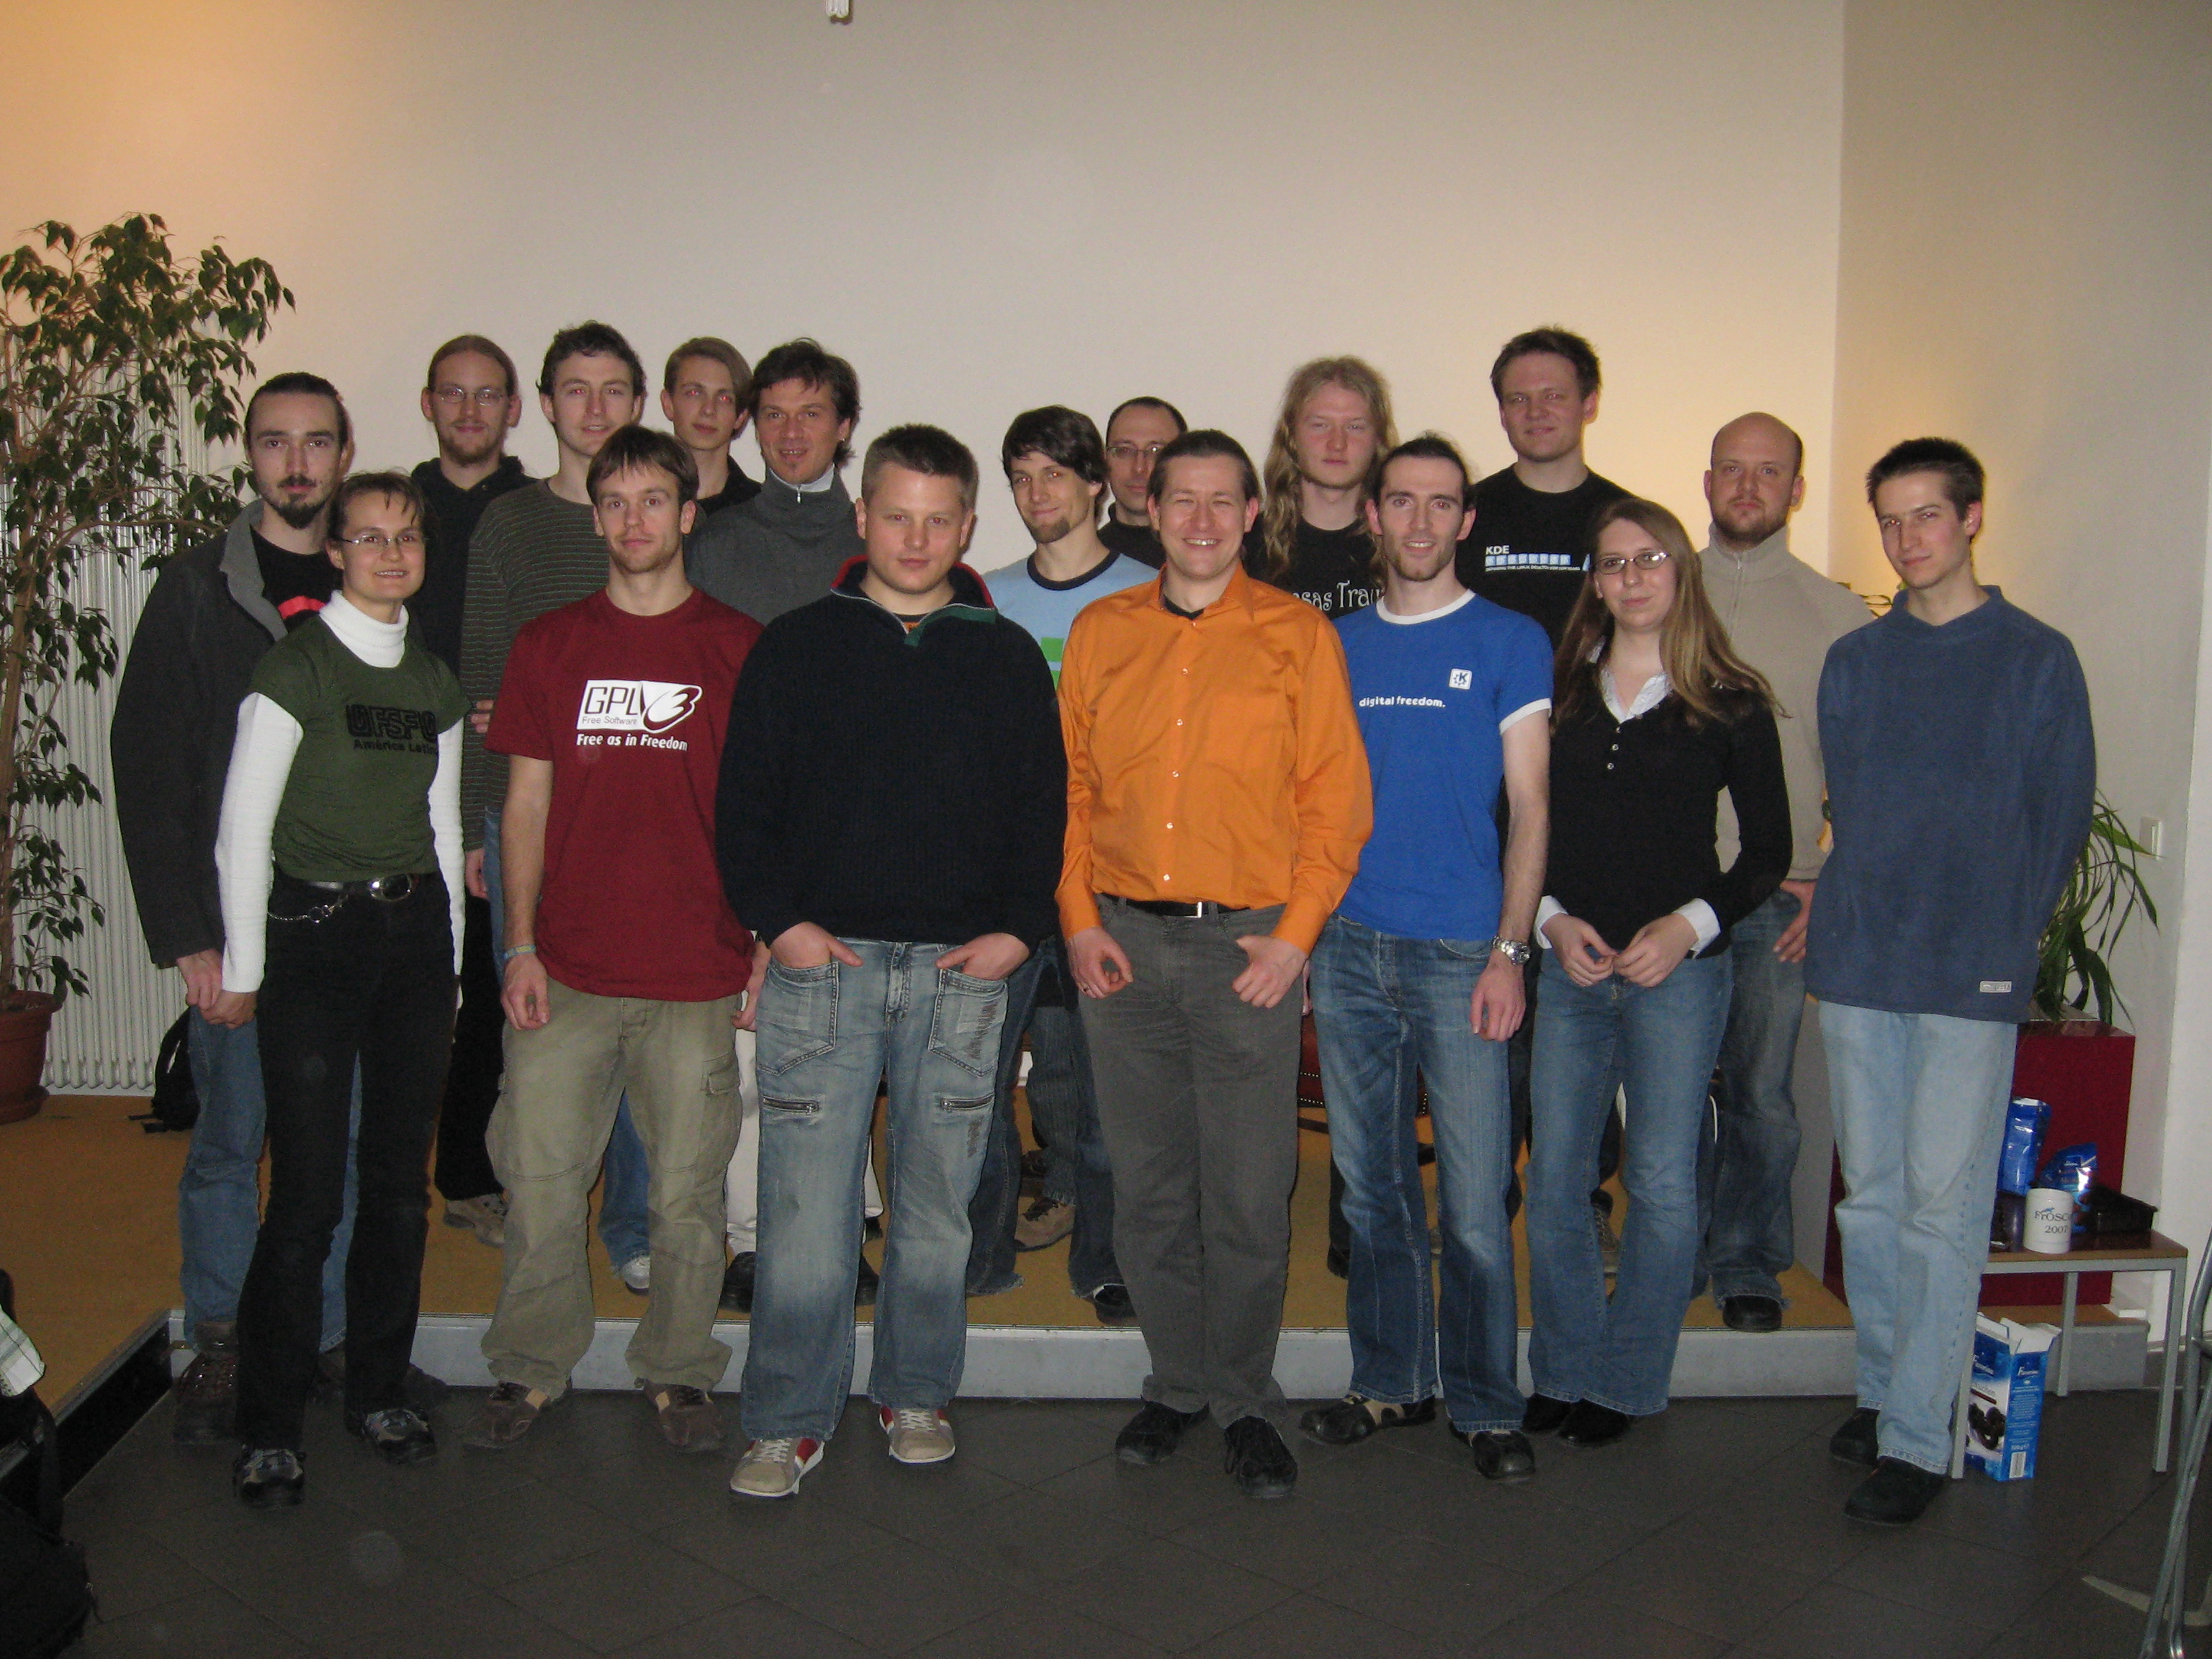 Group picture from Dezember's Fellowship meeting in Berlin.